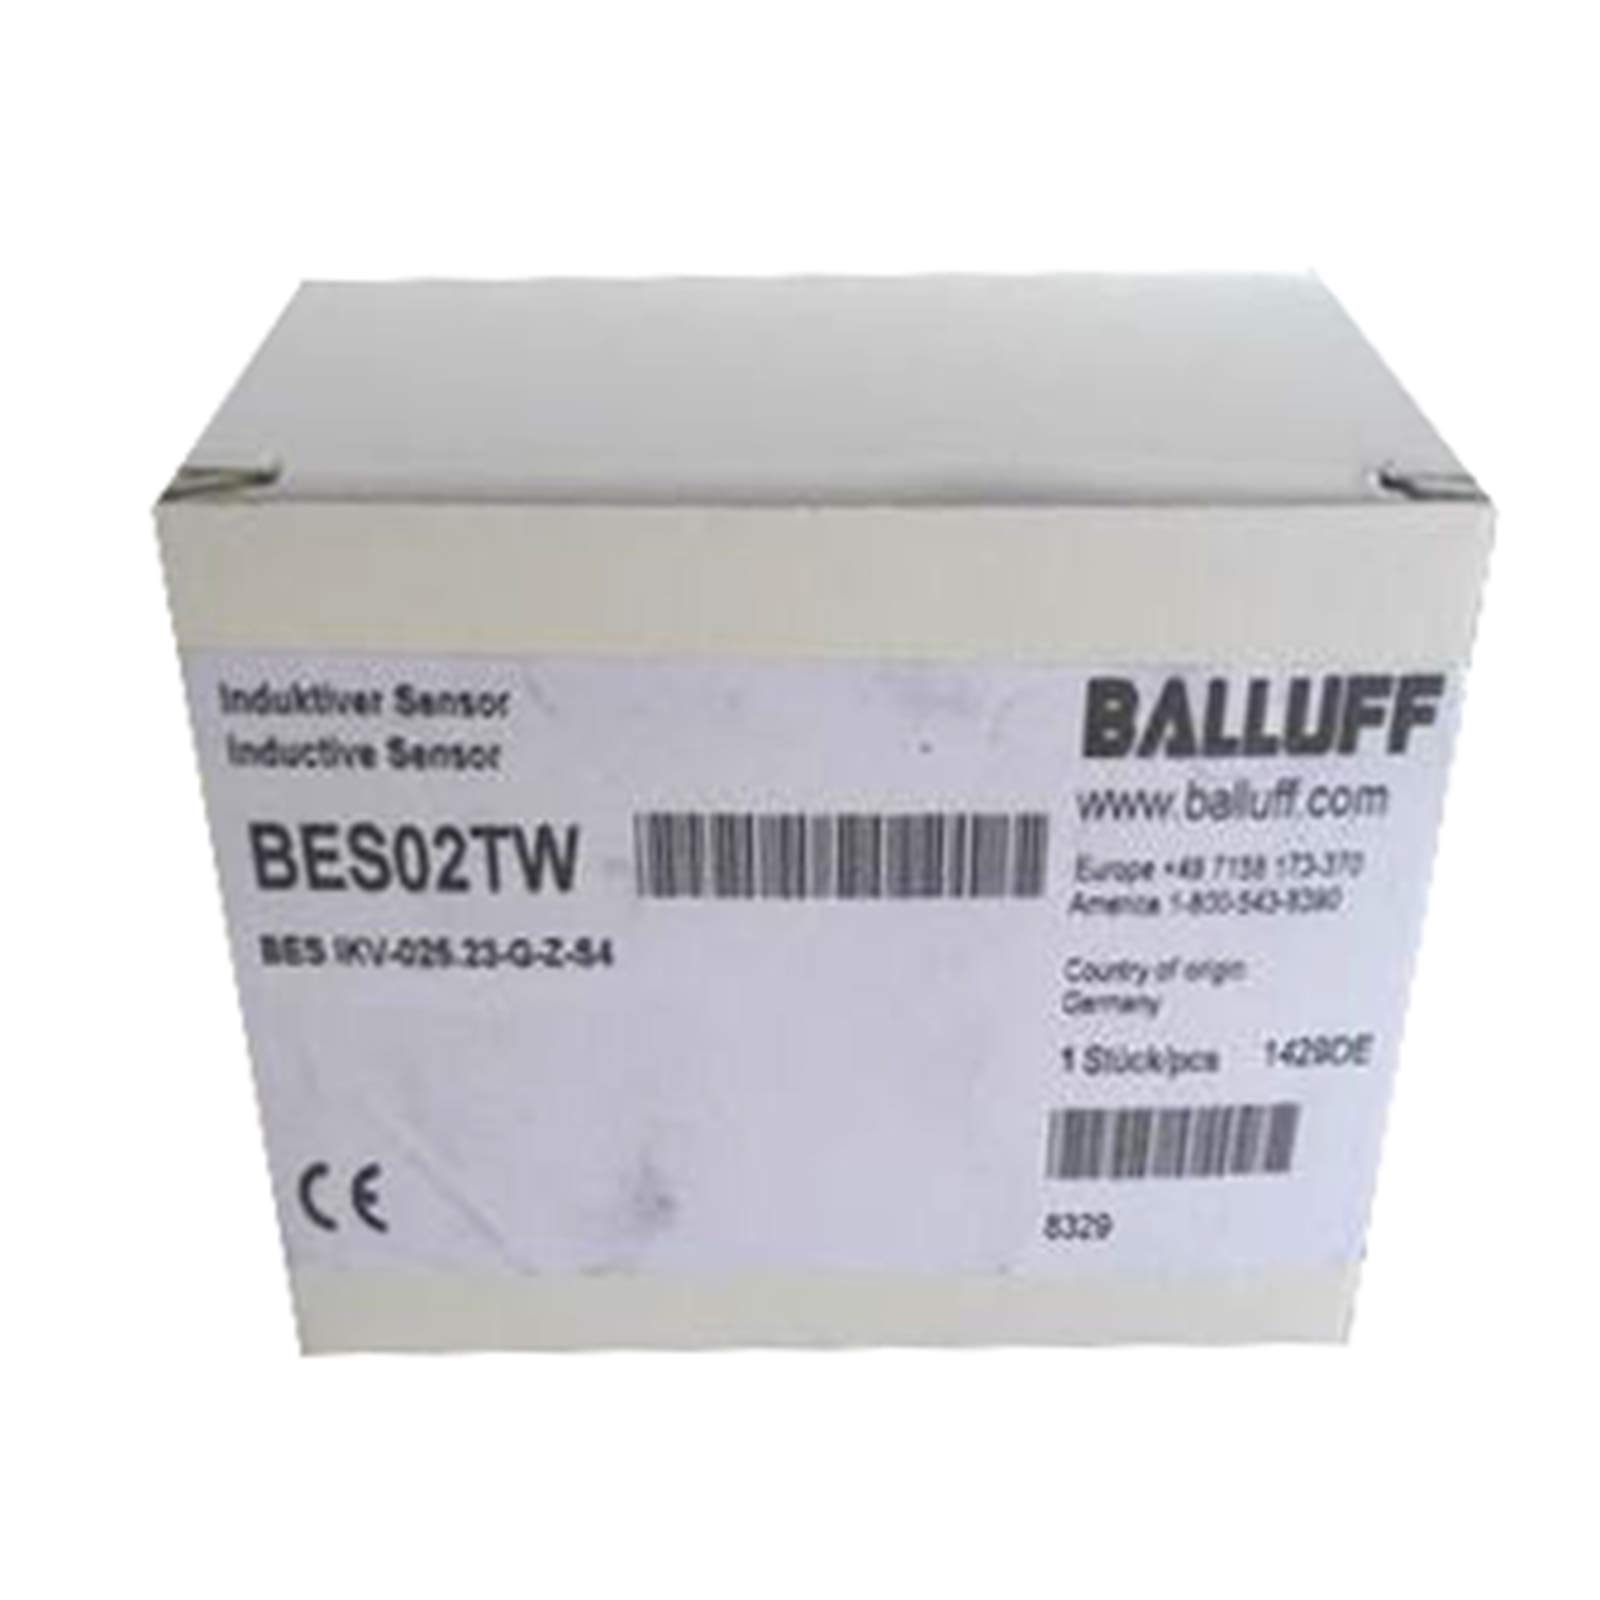 Carus Tool BALLUFF BES IKV-025.23-G-Z-S4(BES02TW) Inductive Ring and Tube Sensors PNP by Carus Tool